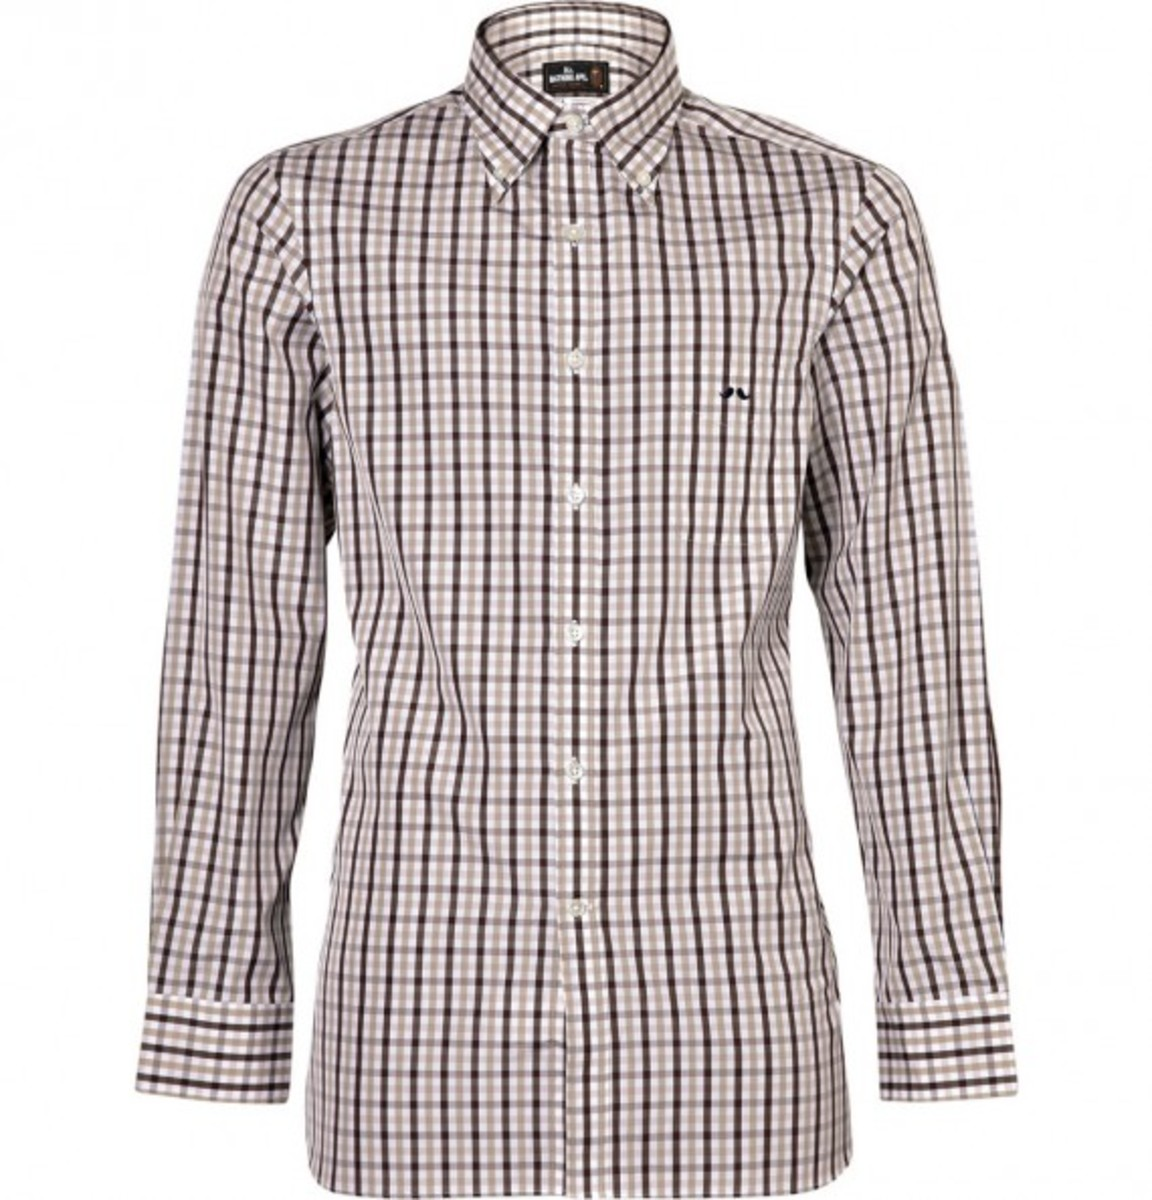 gingham-check-shirt-with-button-down-collar